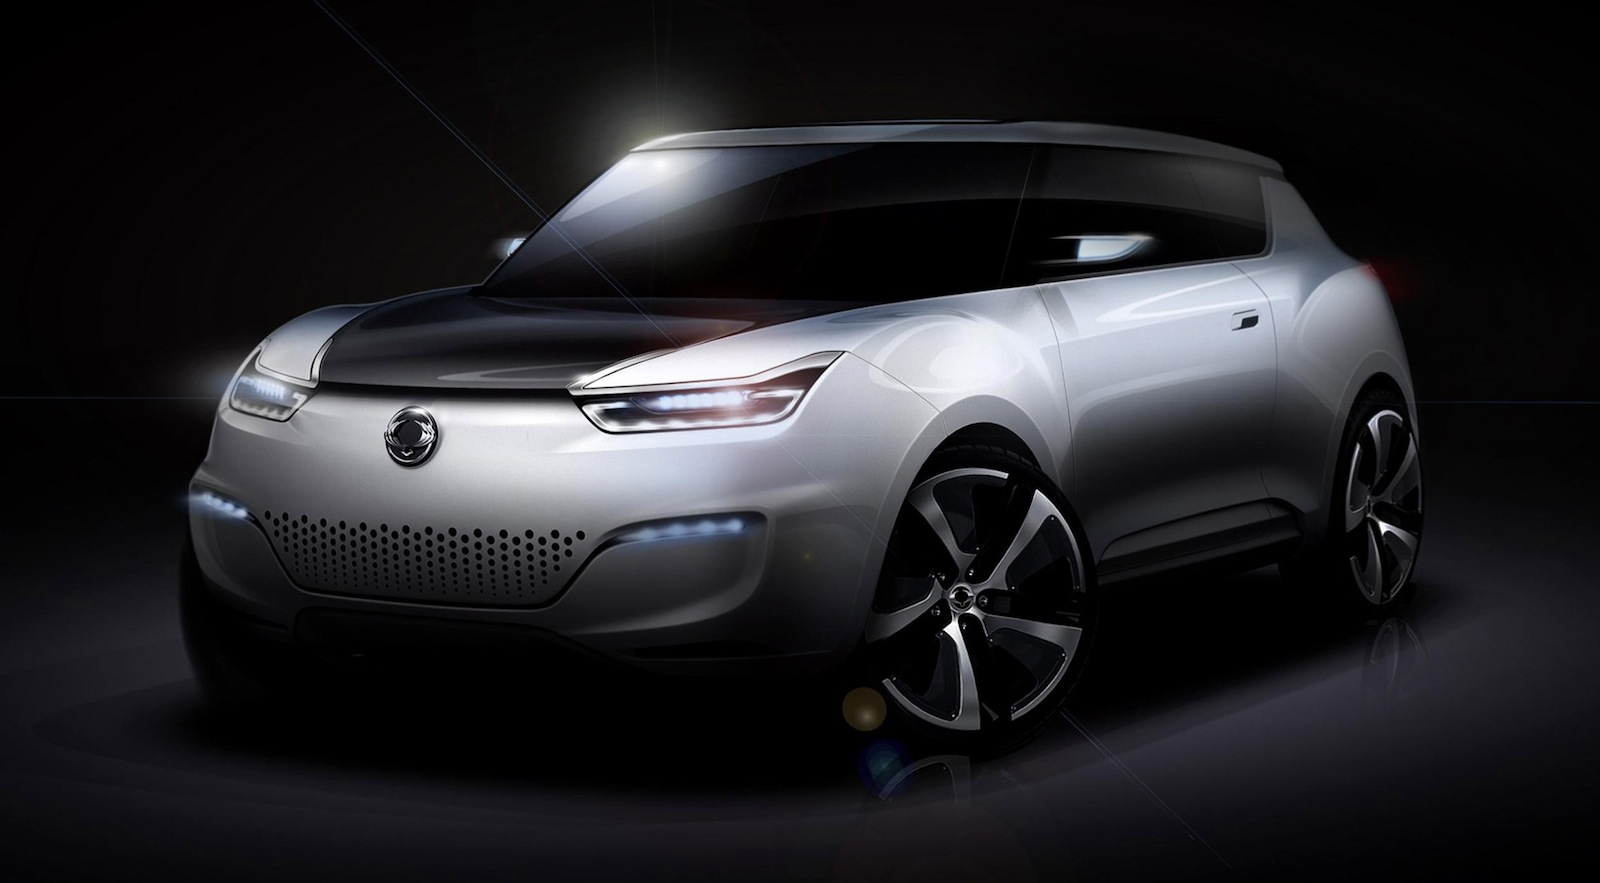 2019 SsangYong XIV 1 Concept photo - 4